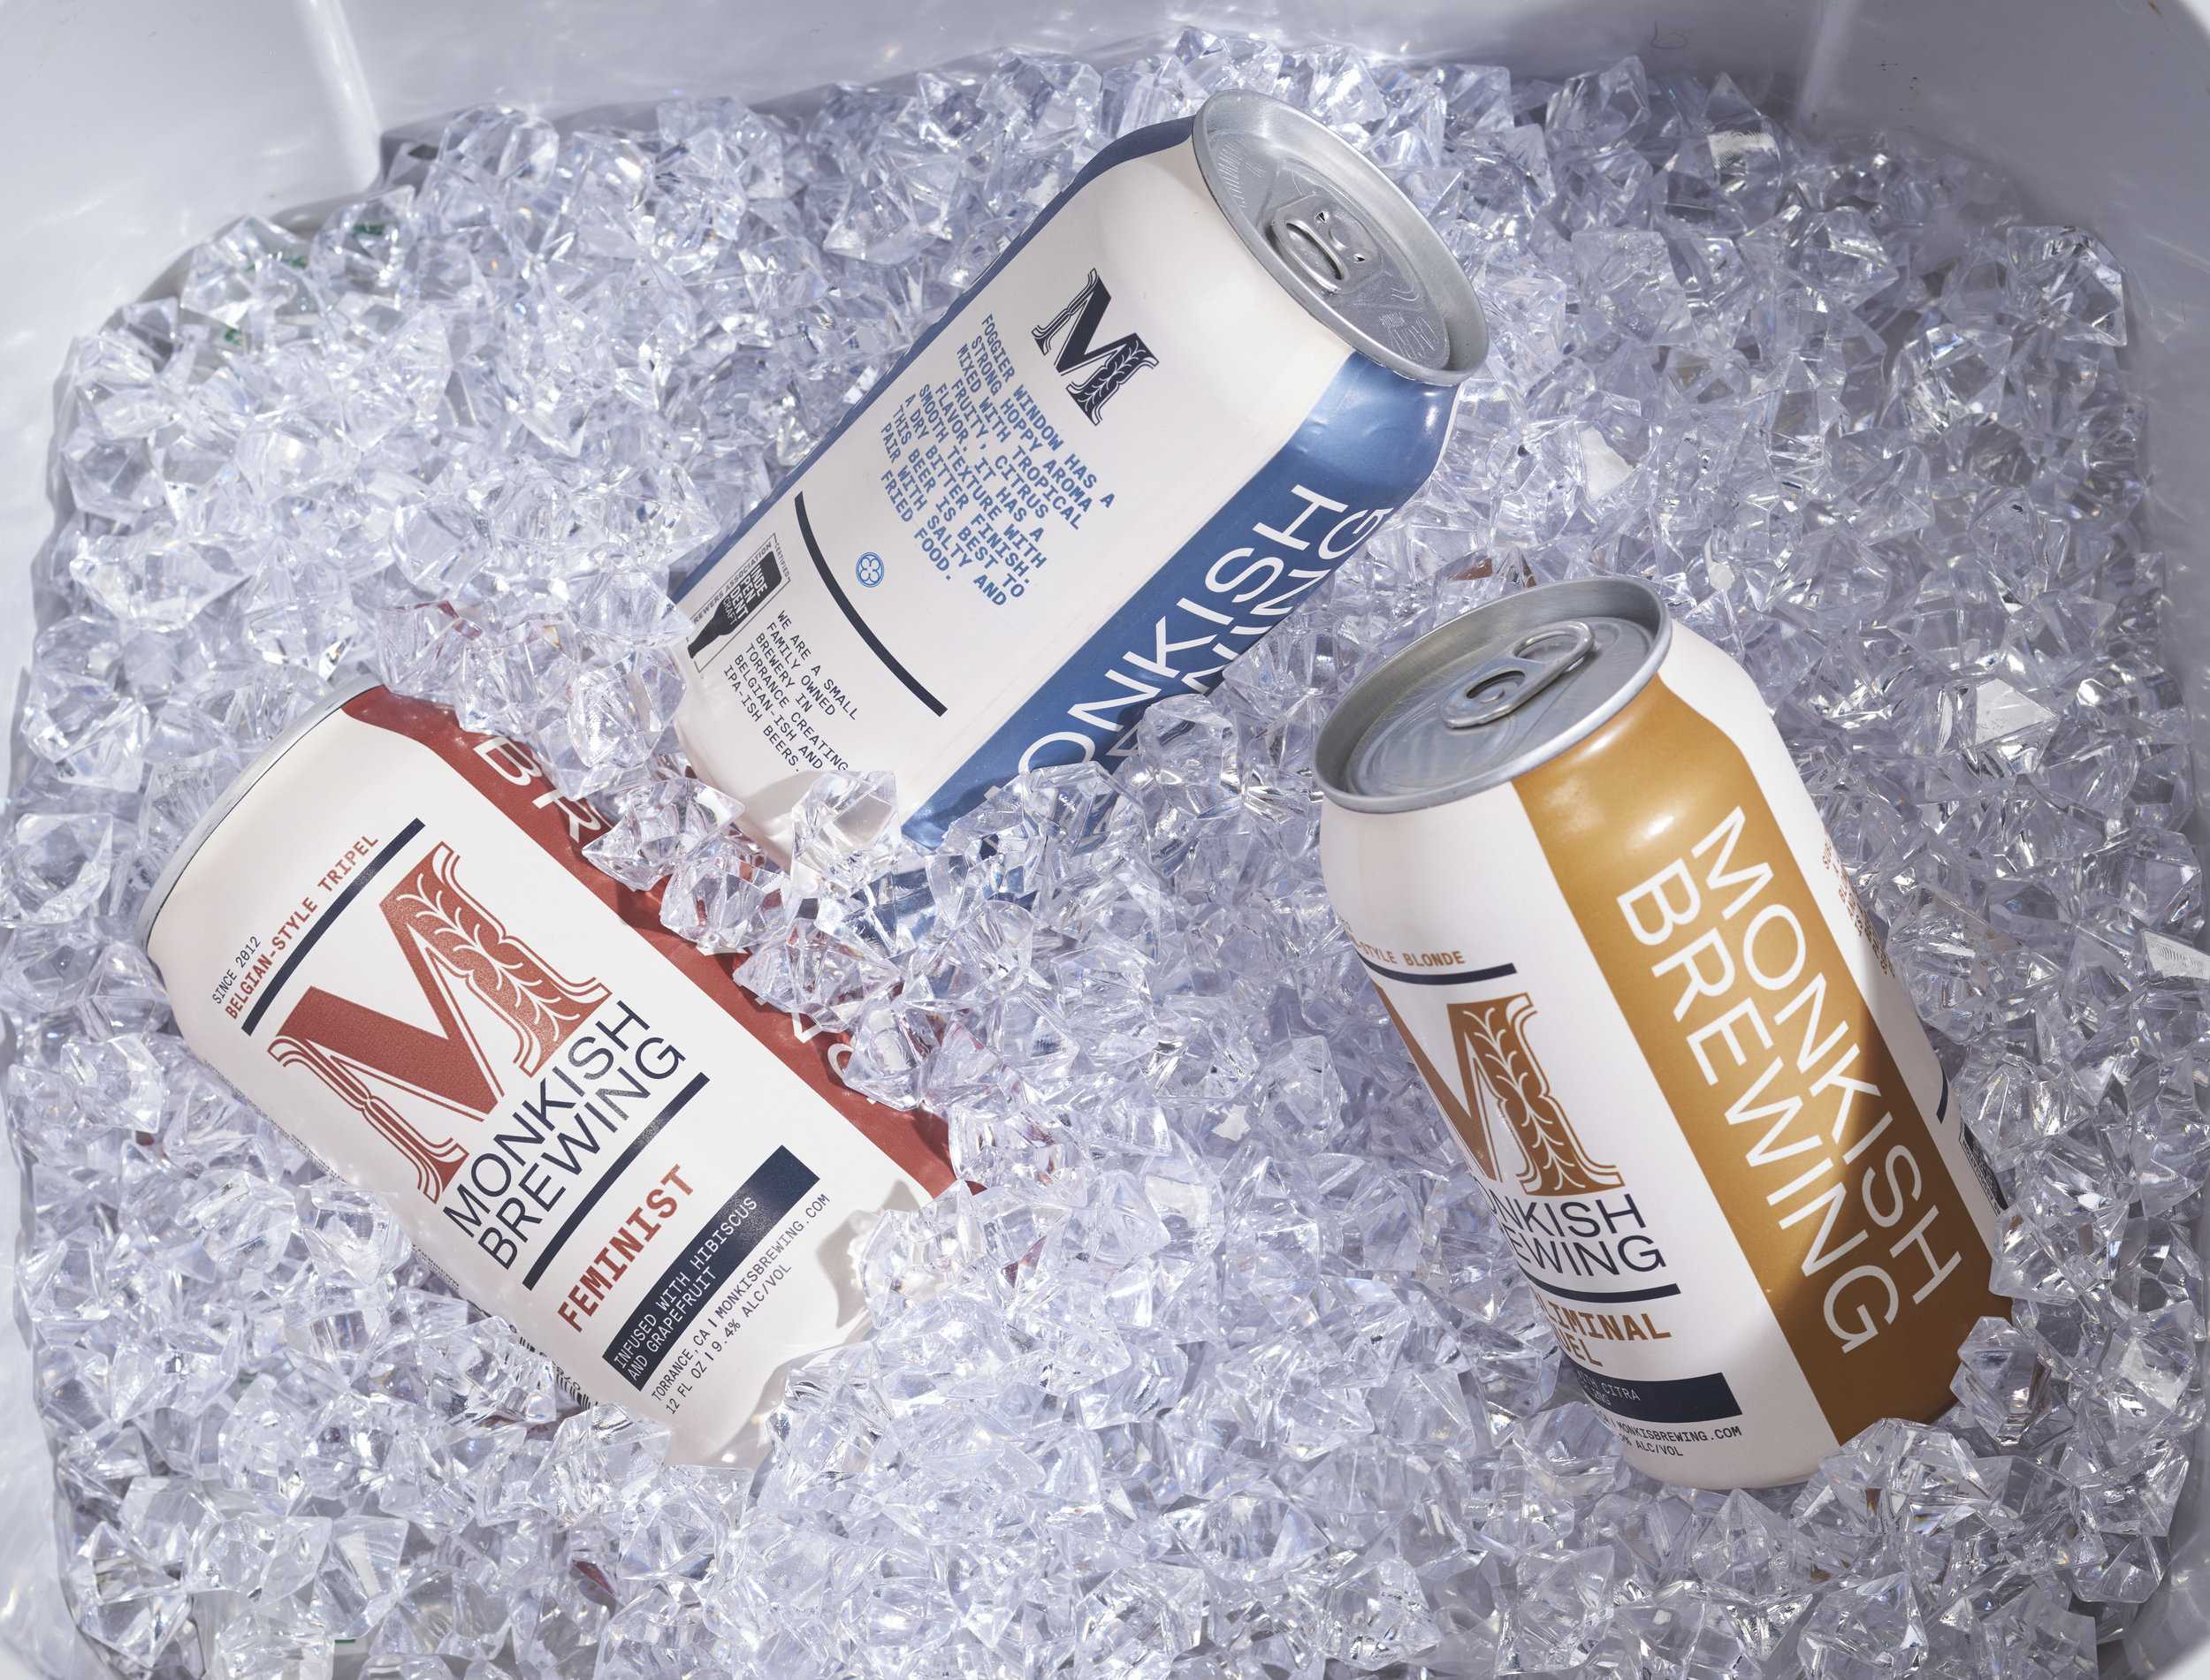 monkish brewery - Packaging and Branding